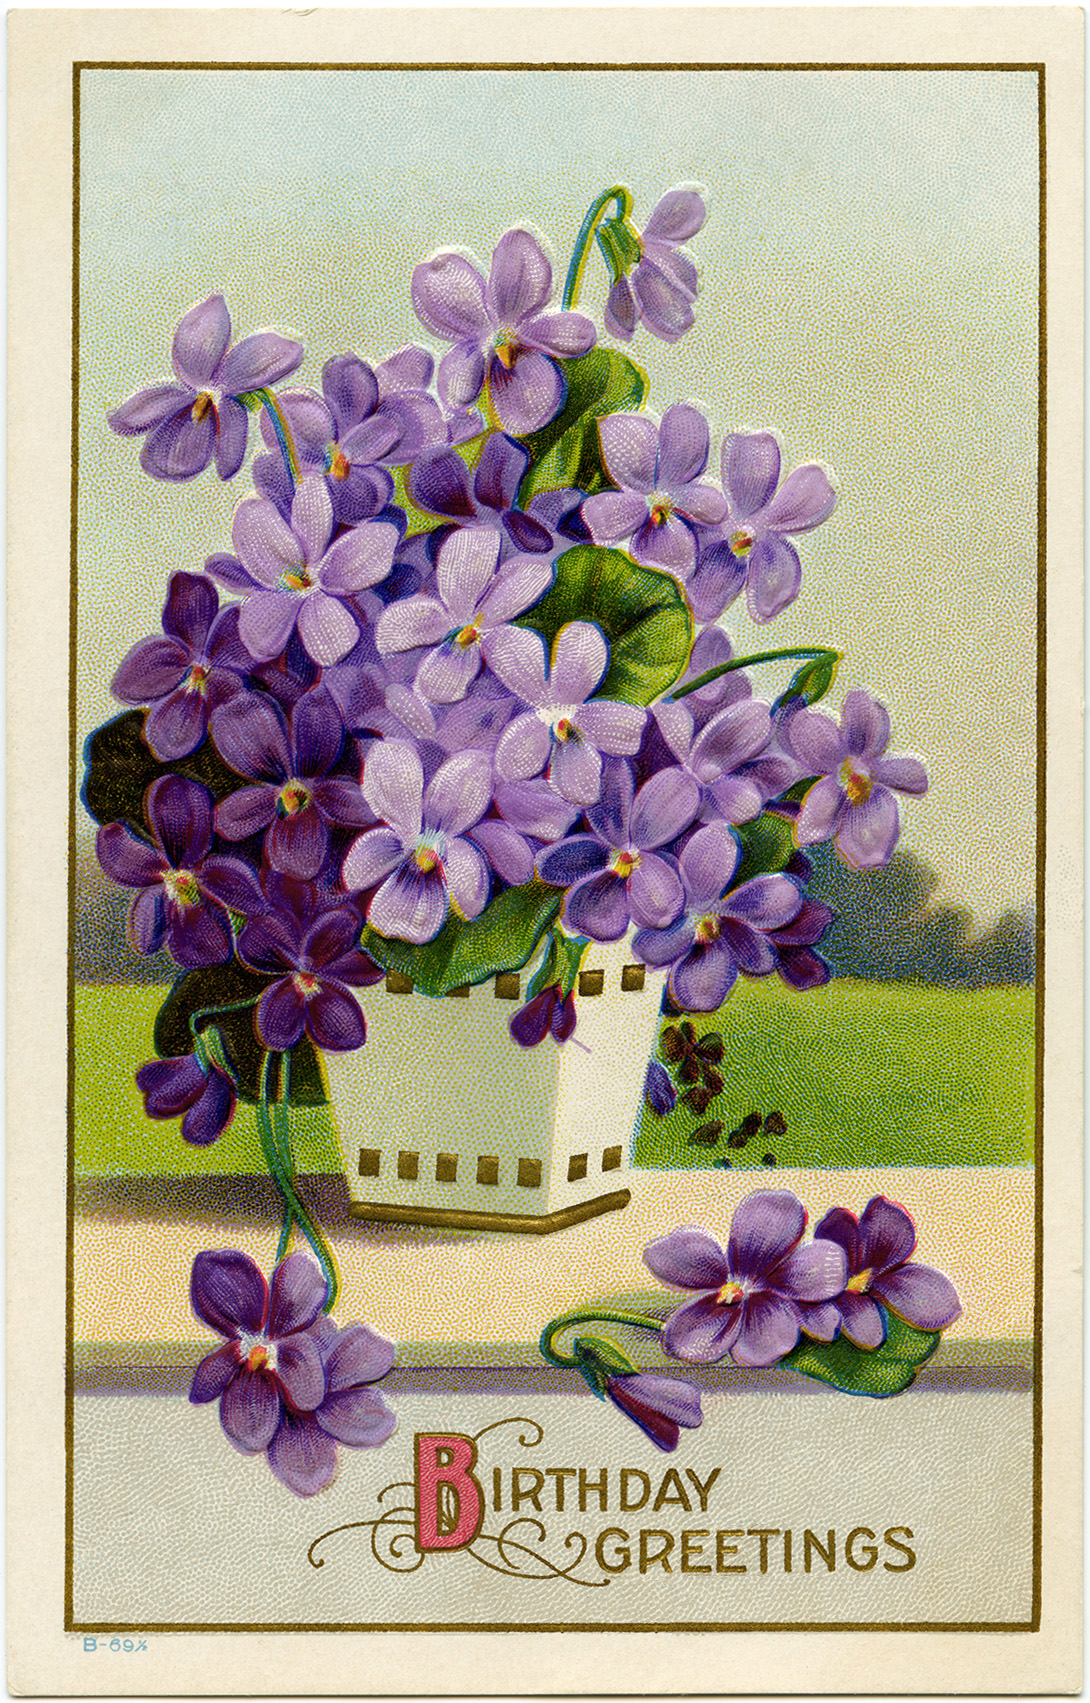 This vintage birthday postcard features a square white vase that is